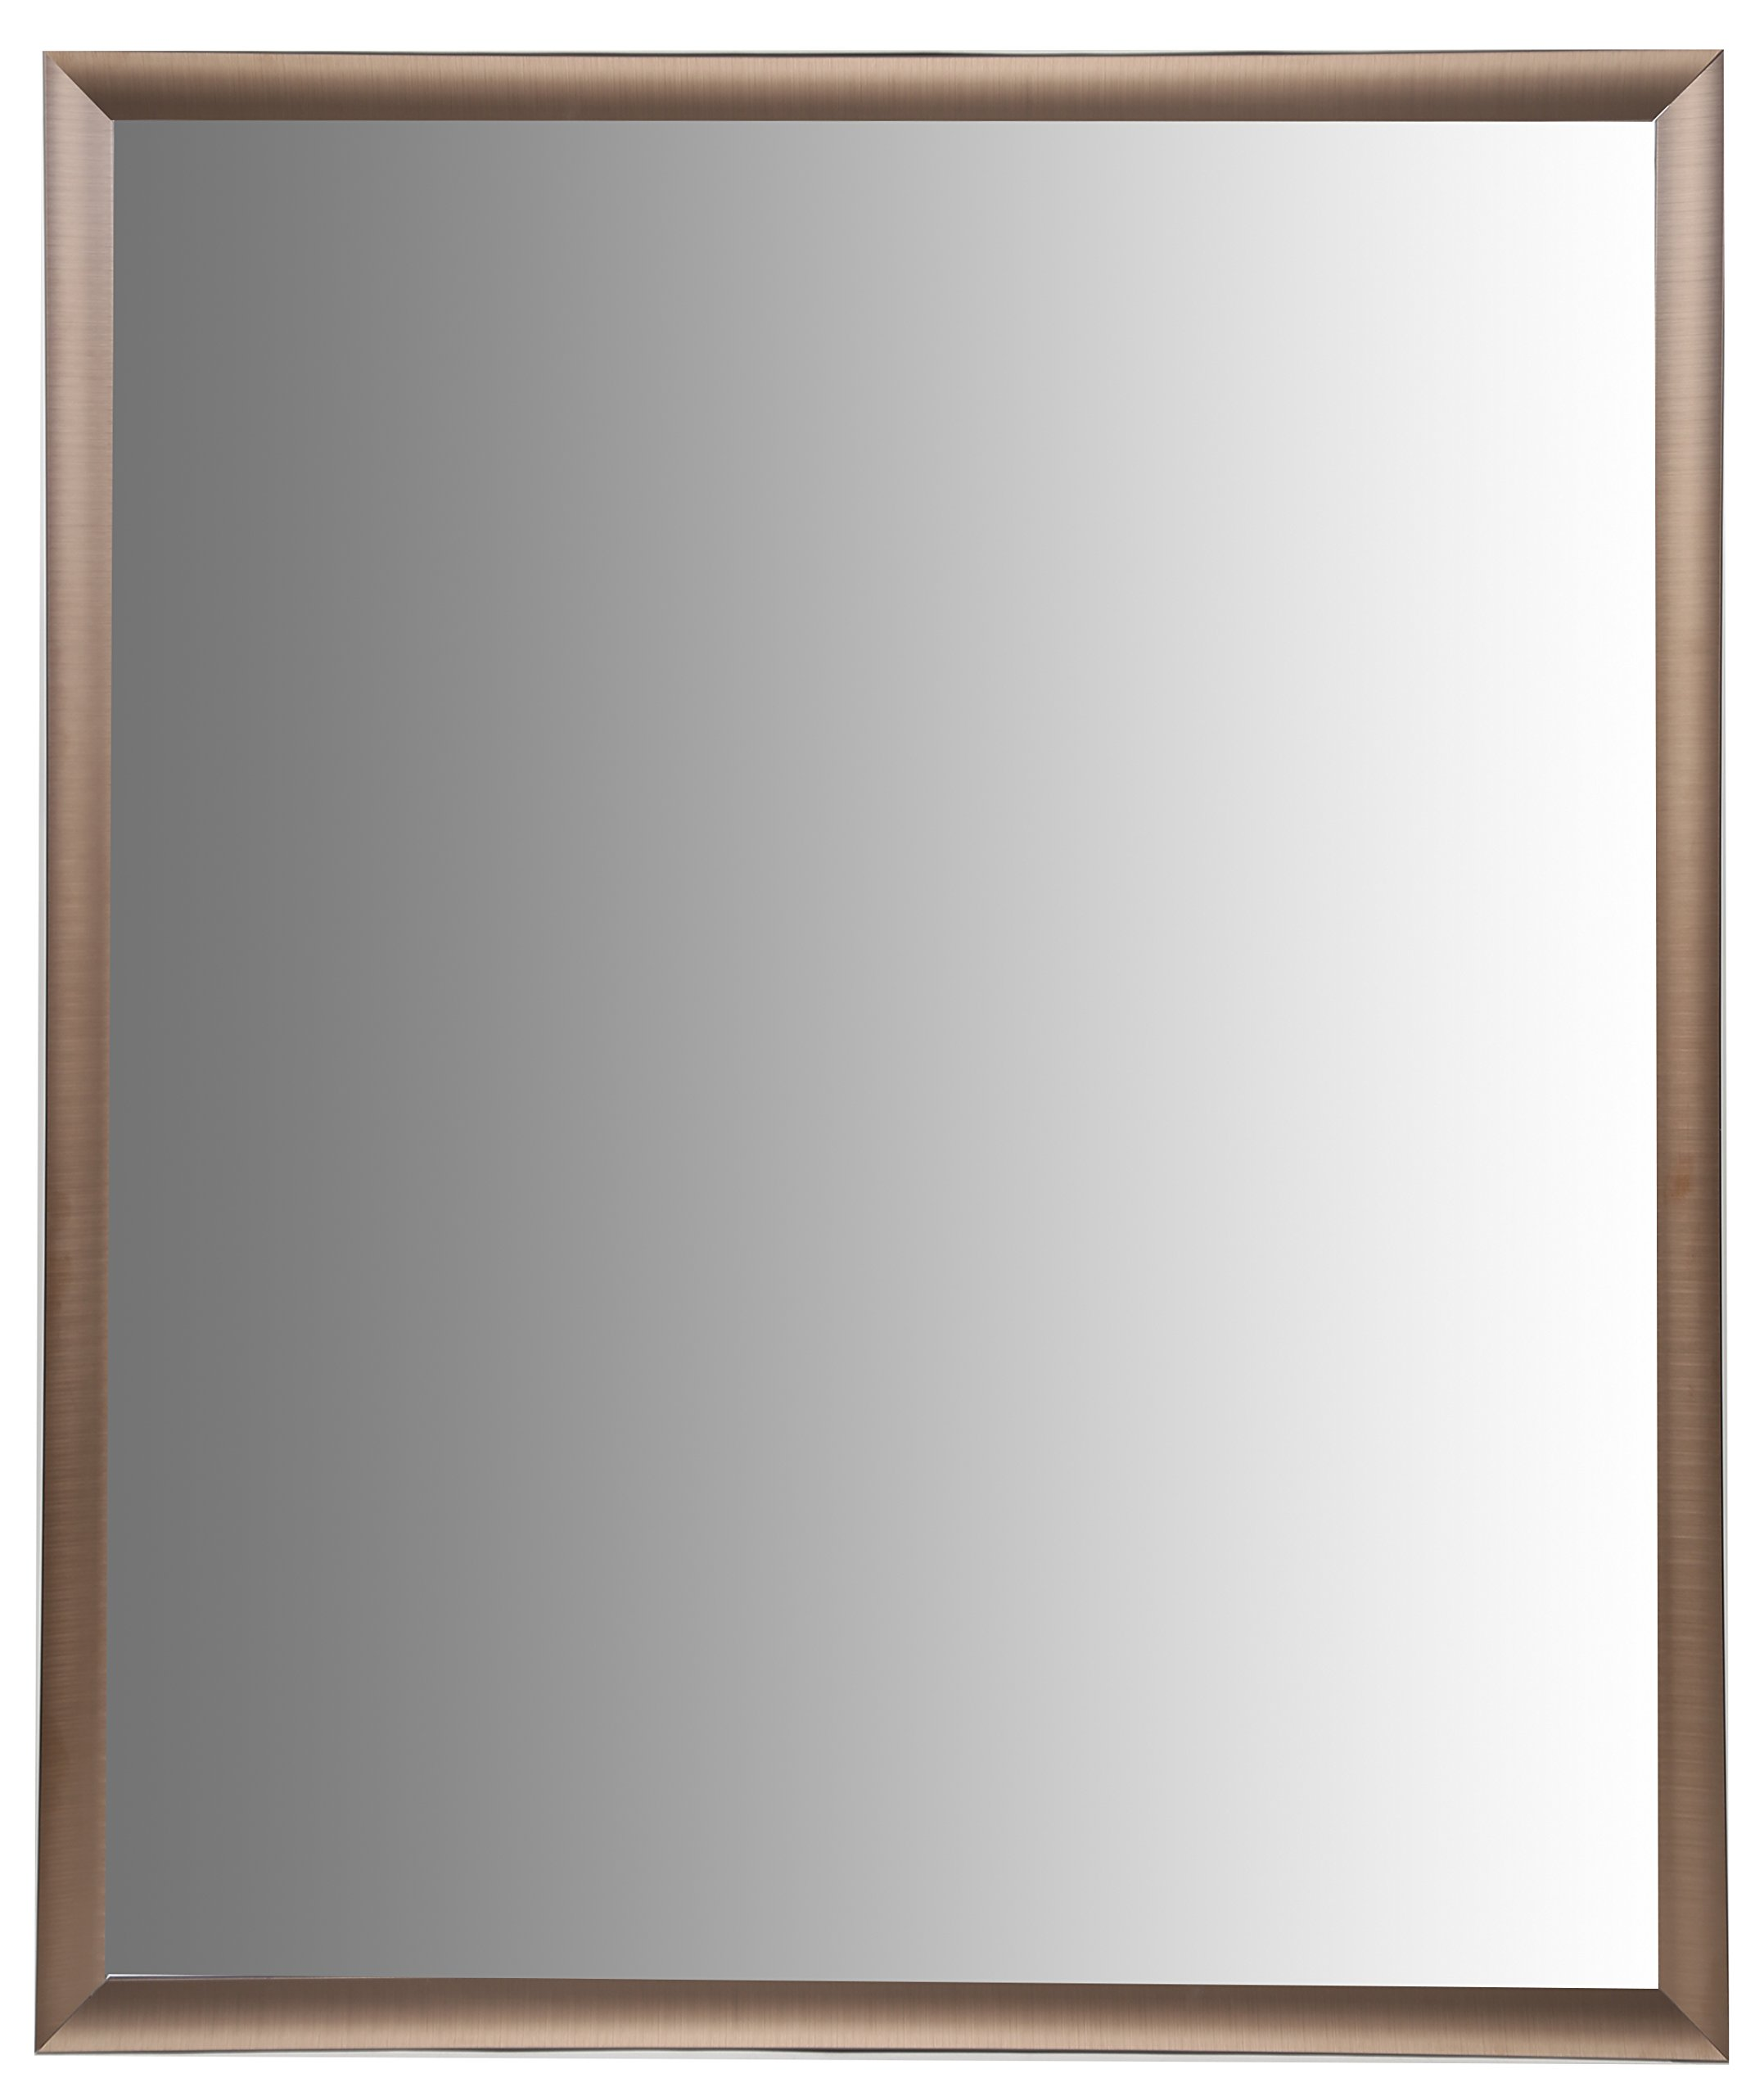 Nielsen Bainbridge 24x30 Rectangular Aluminum Wall Mirror | Vanity Mirror, Bedroom or Bathroom | Hangs Horizontal or Vertical | Brushed Bronze - Contemporary vanity mirror with 1 1/4 wide frame profile in a brushed bronze finish Outer dimensions measure 26.5 inches x 32.5 inches. Mirror dimensions measure 24 inches x 30 inches Mirror includes ready-to-hang durable hangers on the back for vertical or horizontal hanging options - bathroom-mirrors, bathroom-accessories, bathroom - 71tk3HYJb3L -